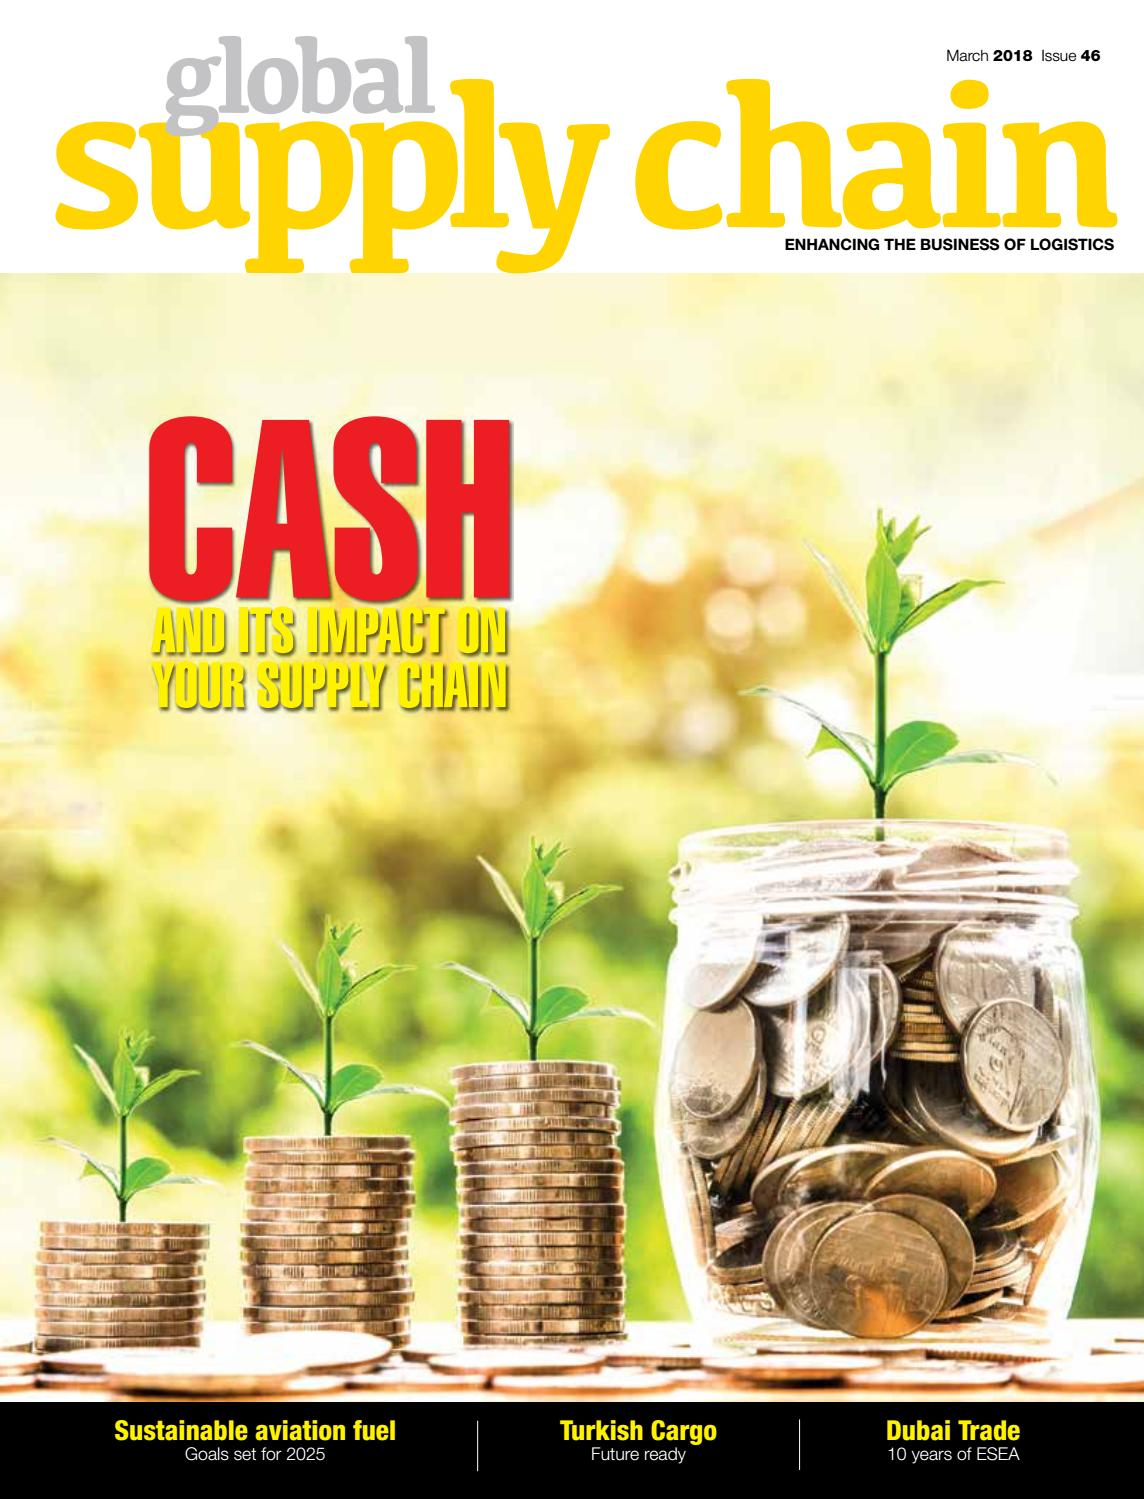 GLOBAL SUPPLY CHAIN MARCH 2018 ISSUE by GLOBAL SUPPLY CHAIN